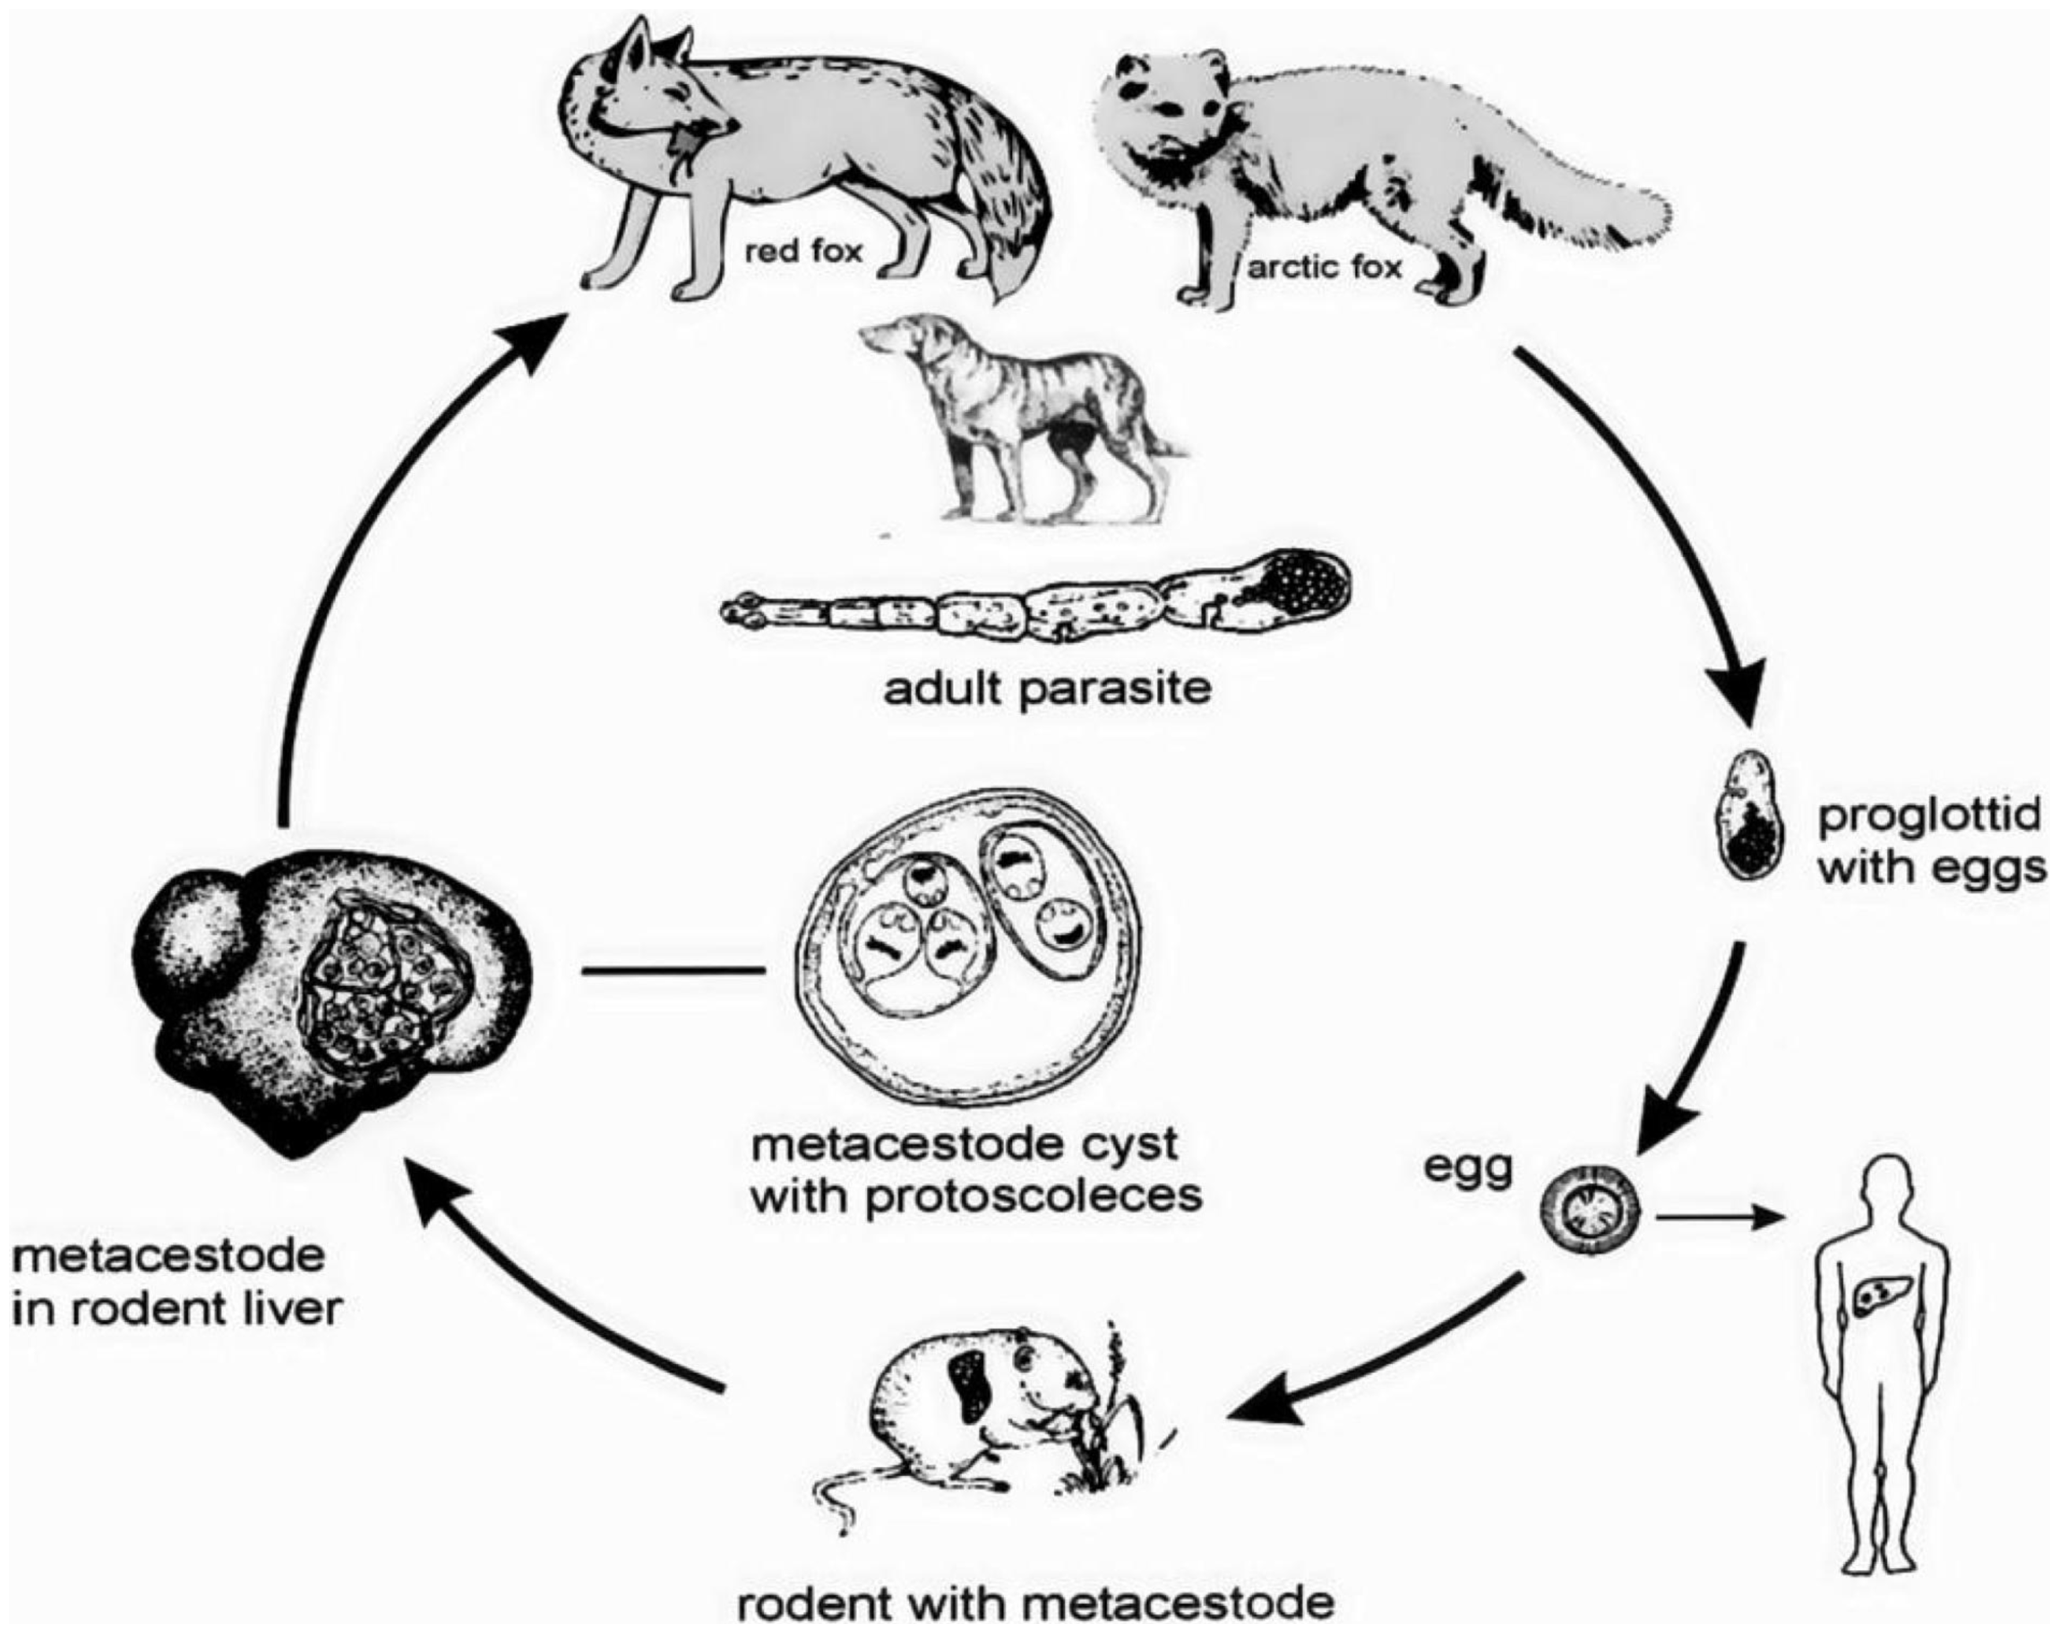 The life cycle of  Echinococcus multilocularis . Red fox and coyote serve as main definitive hosts. Rodents such as small rodents serve as typical intermediate hosts. Man is infected as an aberrant intermediate host. (Photo |  Global Burden of Alveolar Echinococcosis )